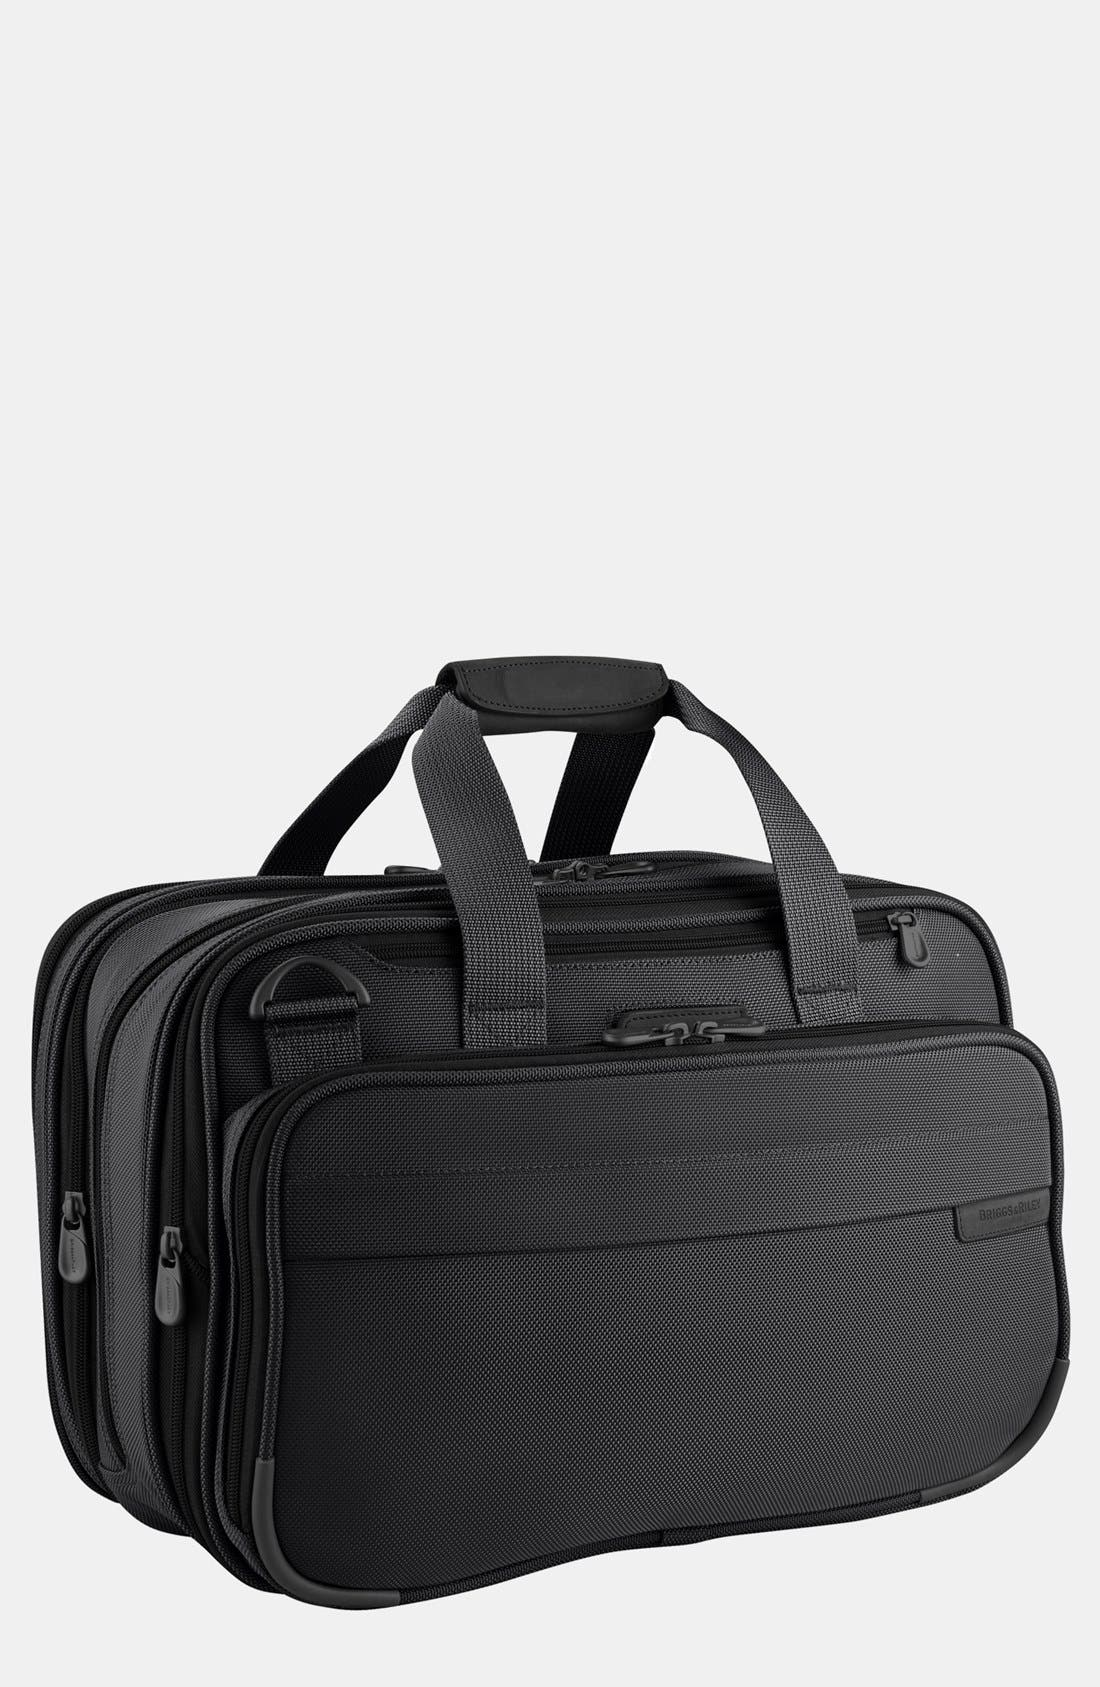 Expandable Cabin Bag,                             Main thumbnail 1, color,                             Black